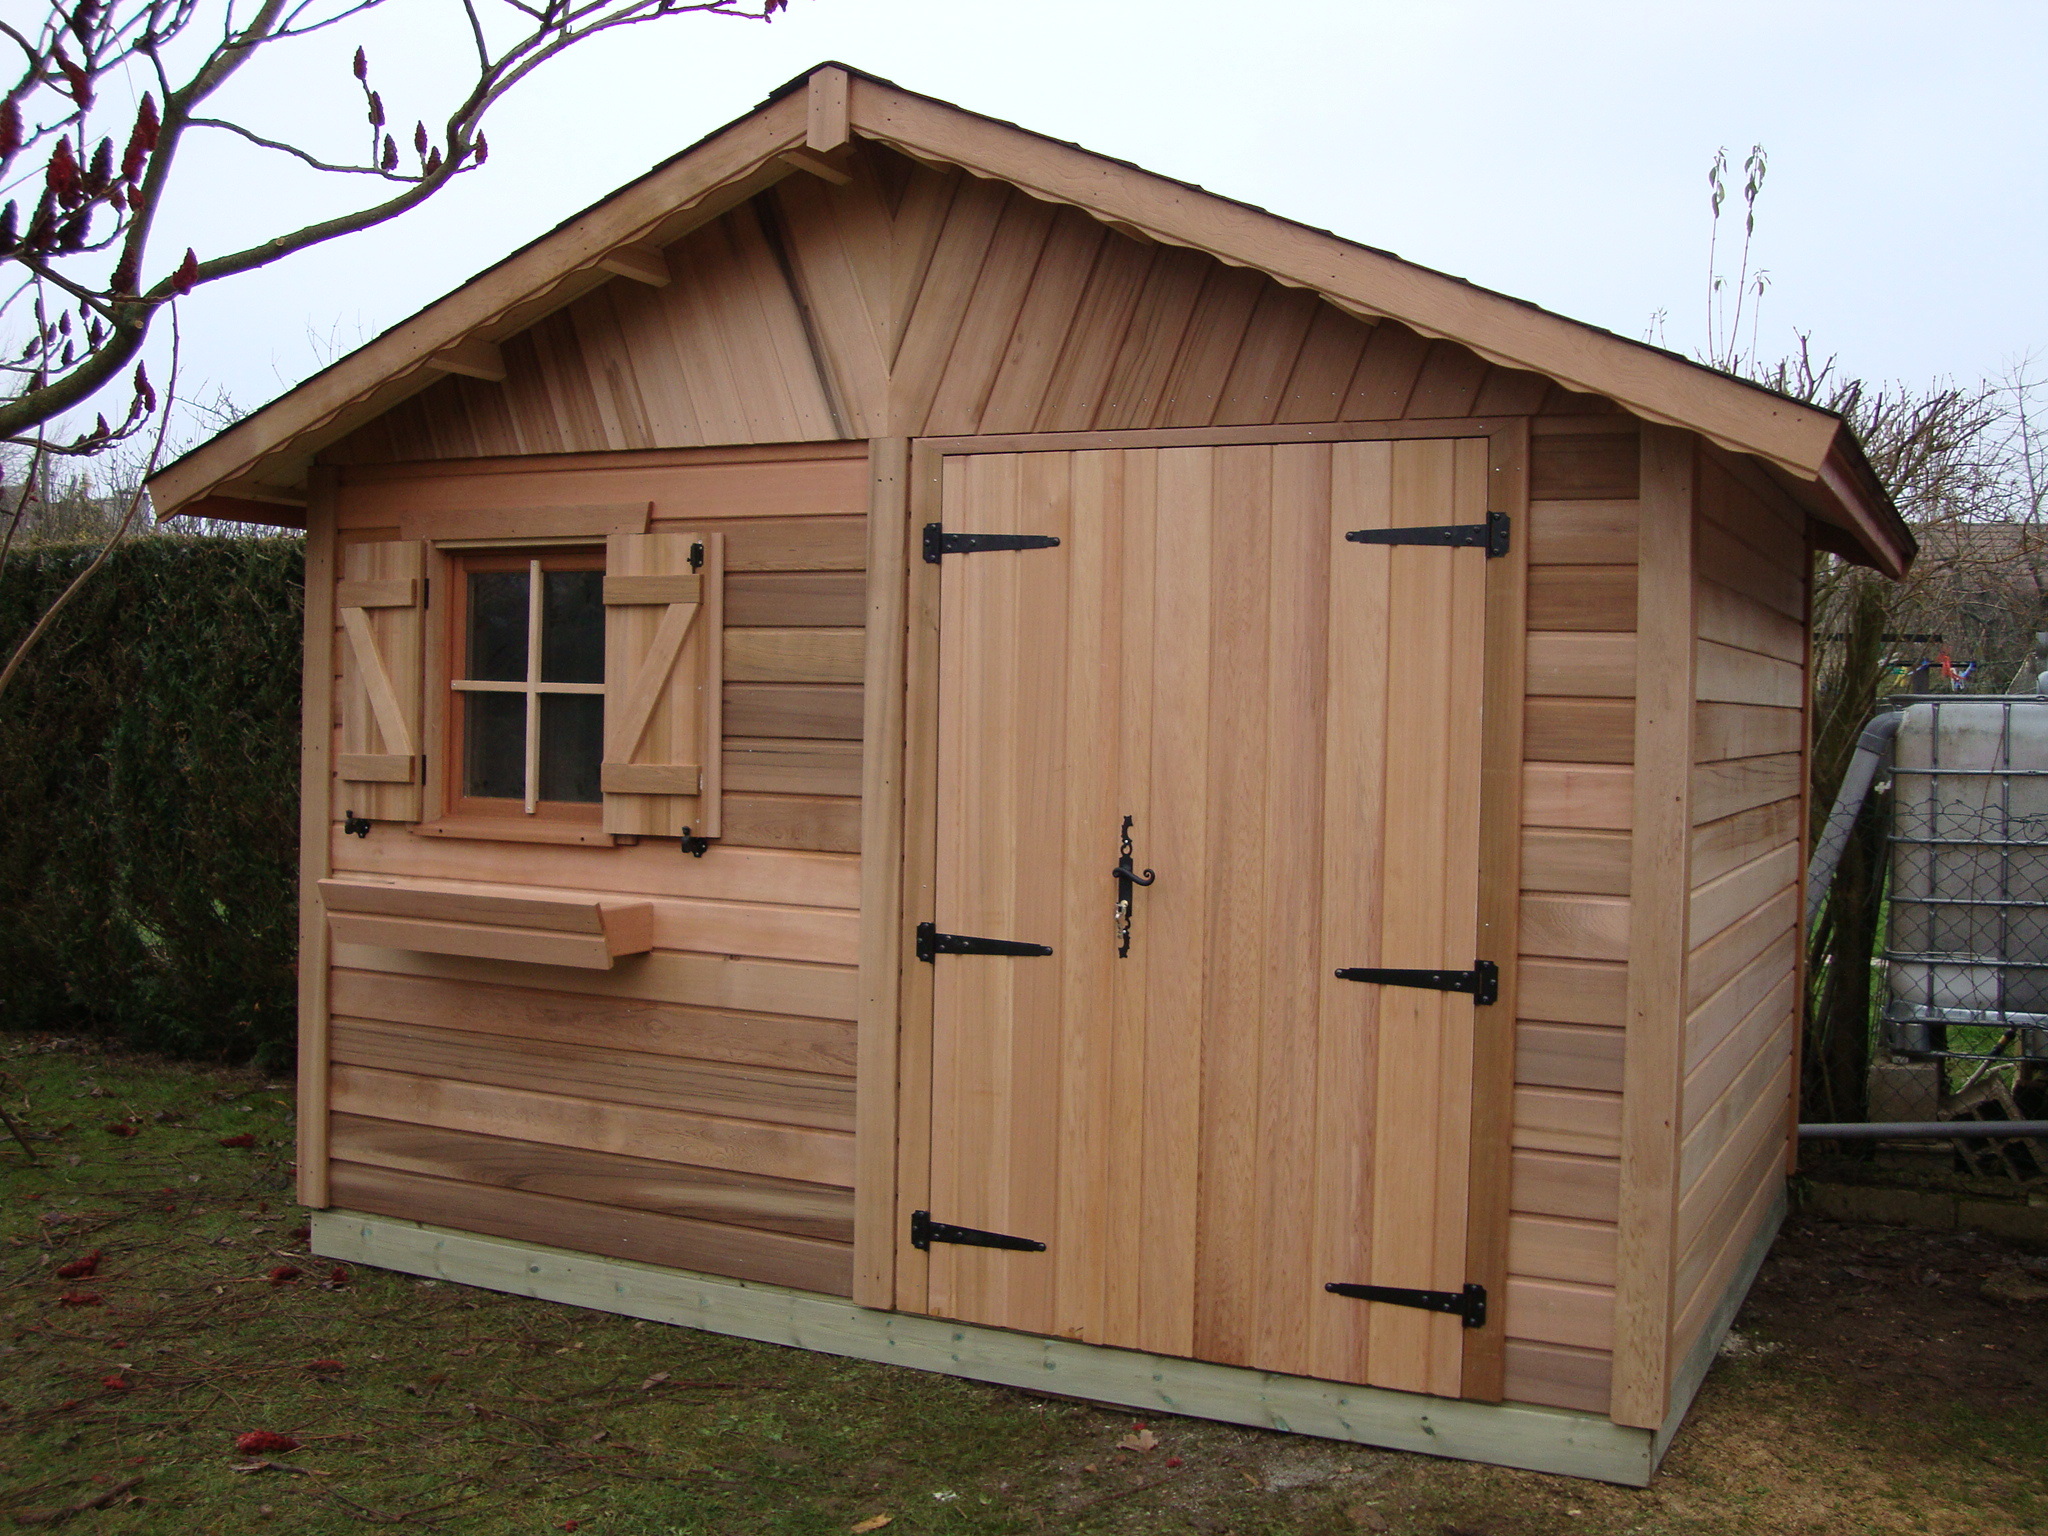 Abri de jardin en bois nandy red cedar for Porte de cabanon double